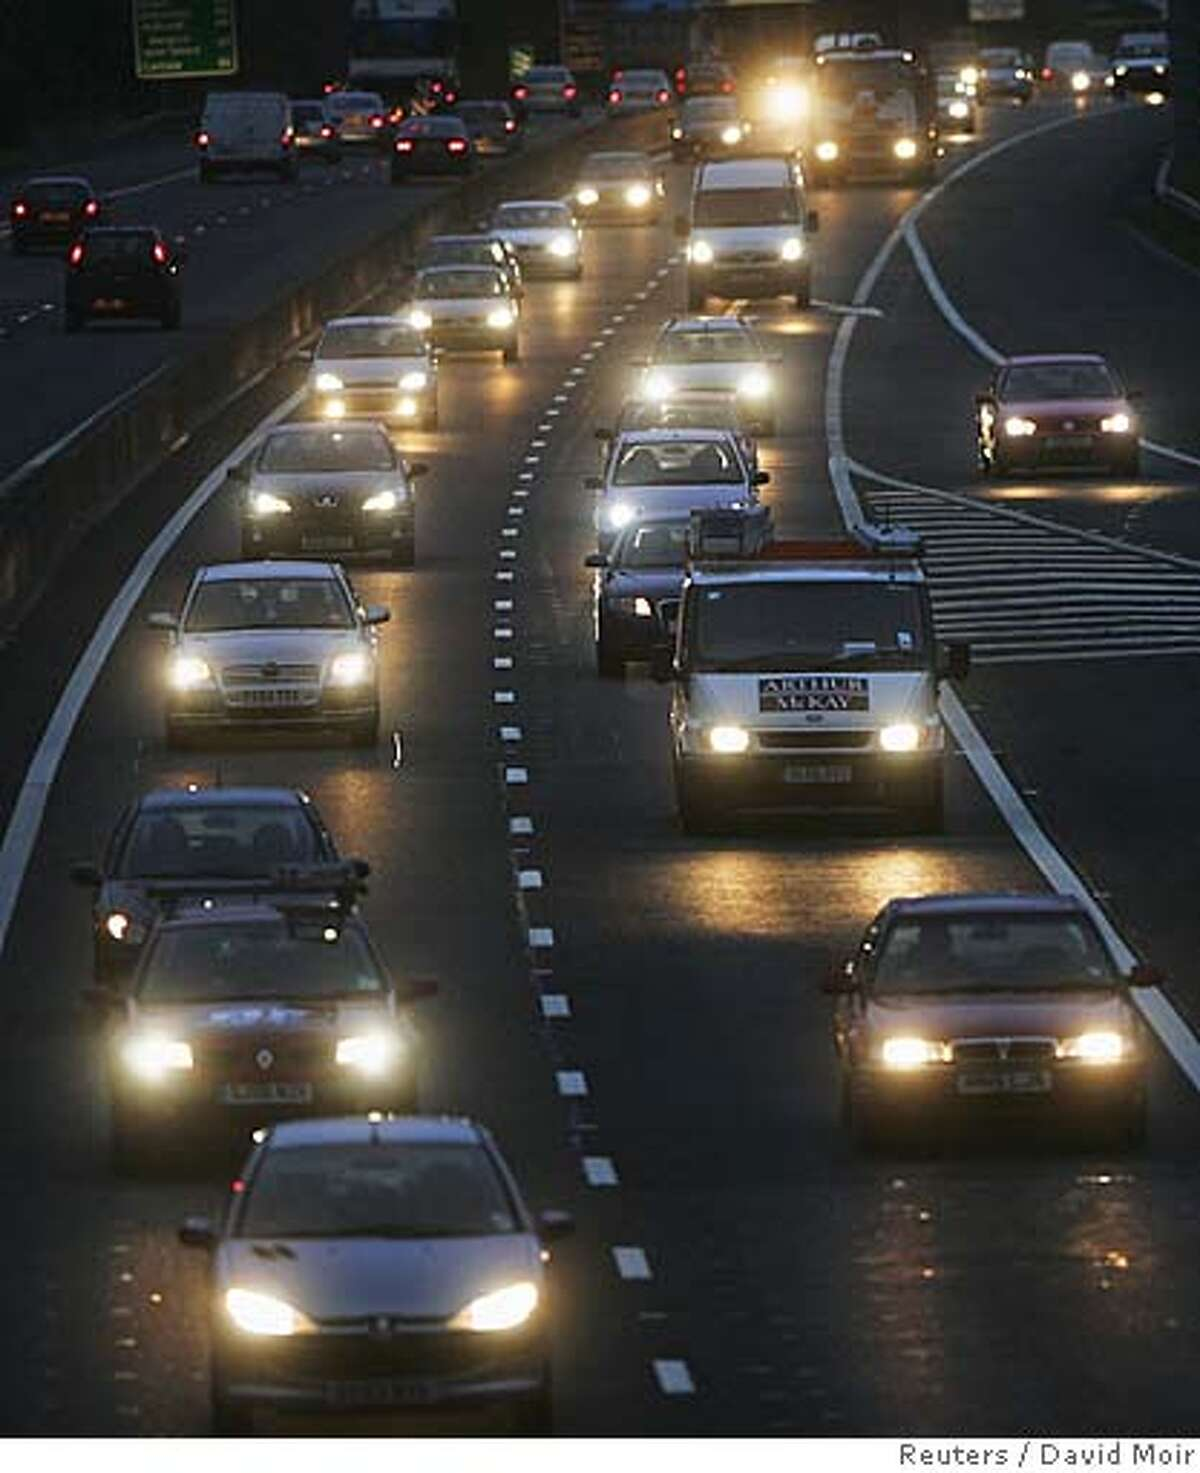 A general view shows a rush hour traffic on the A720 city bypass in Edinburgh, Scotland October 30, 2006. Britain issued a call for urgent action on climate change on Monday after a hard-hitting report painted an apocalyptic picture of the economic and environmental fallout from further global warming. REUTERS/David Moir (UNITED KINGDOM)